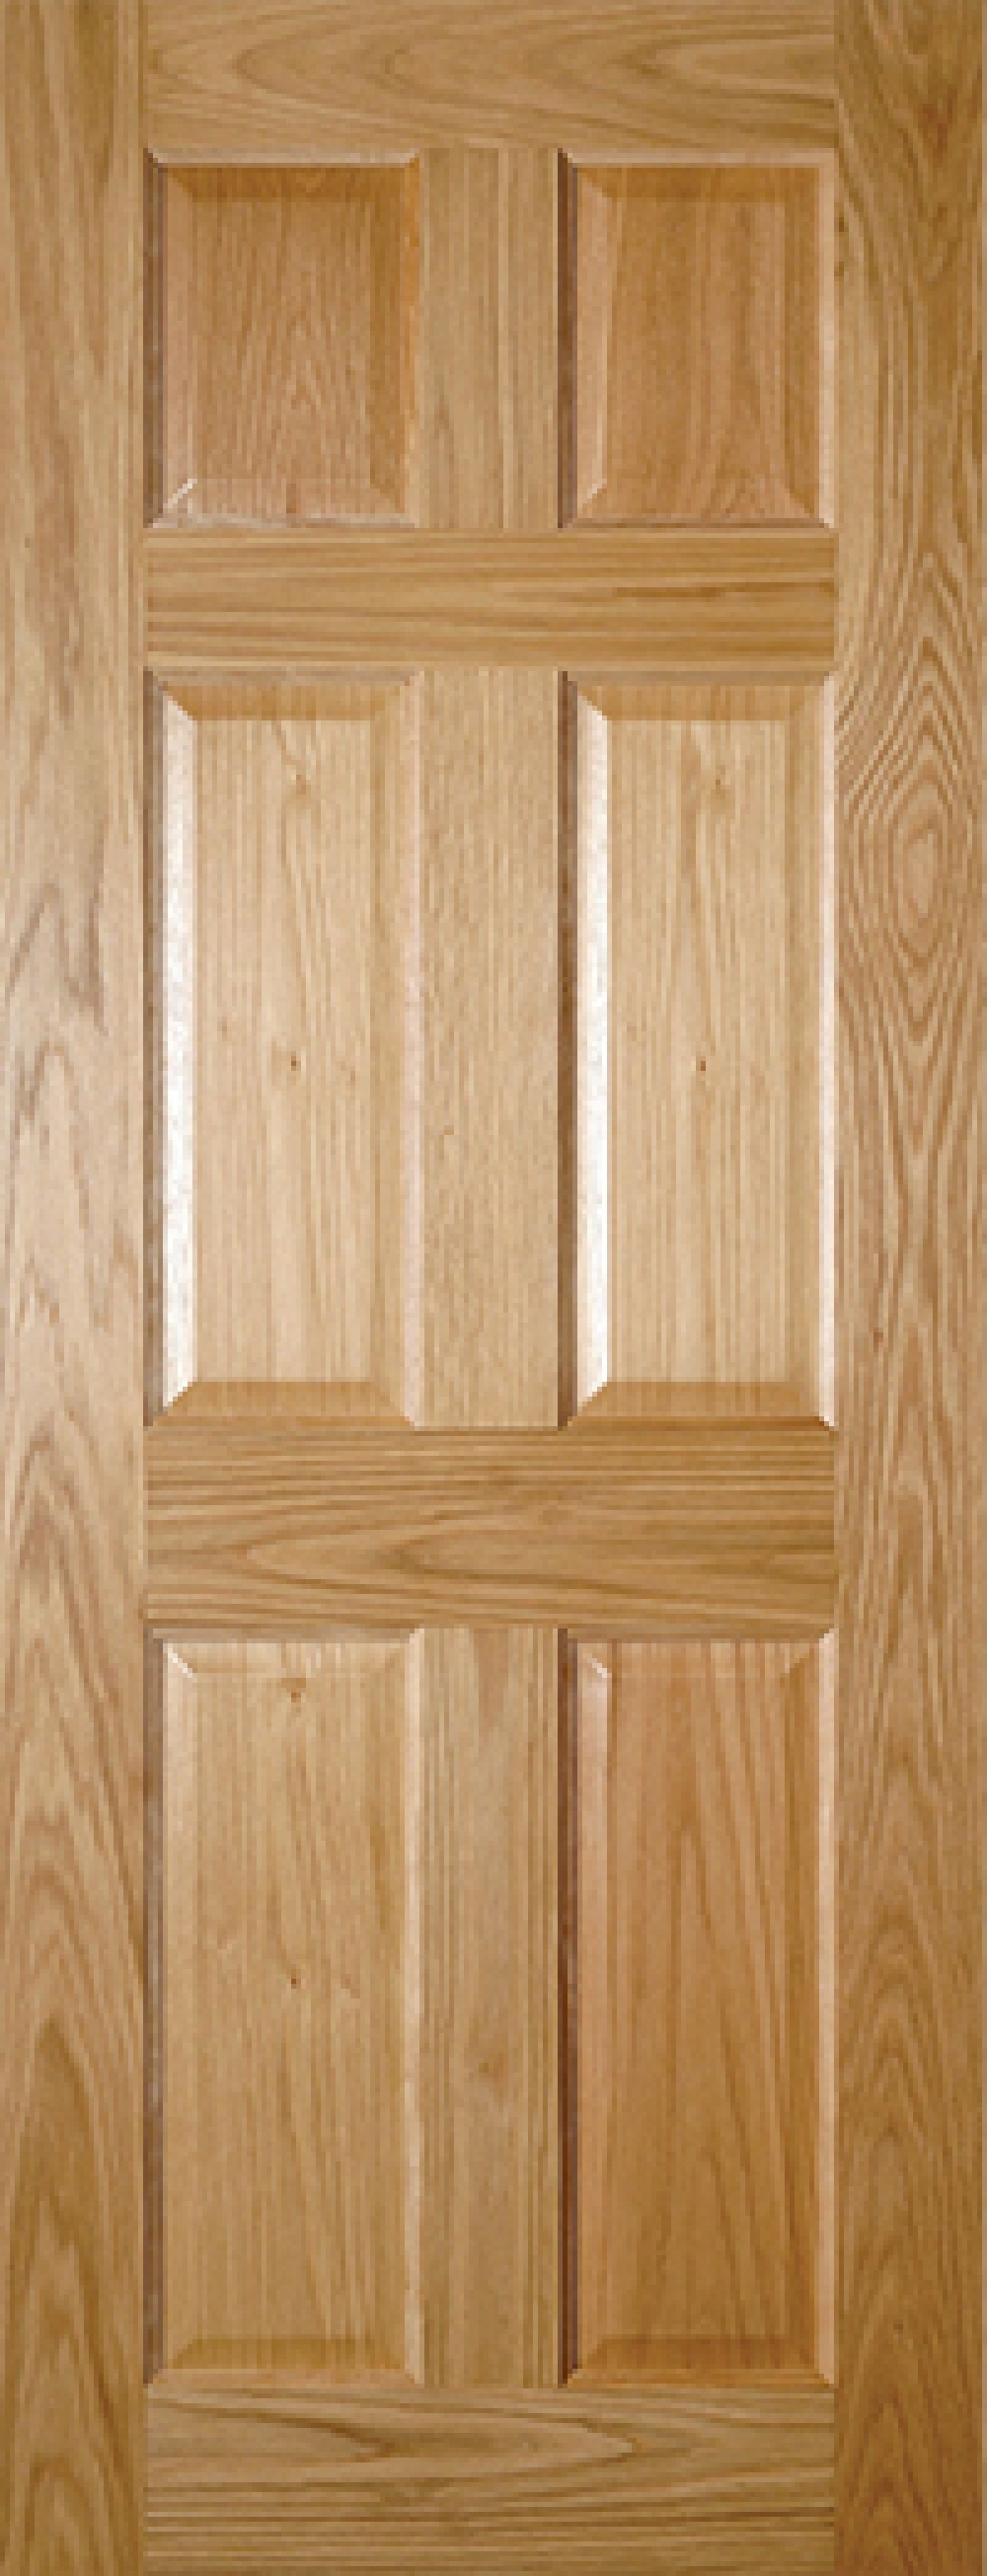 Oxford 6 panel oak door prefinished oak doors vibrant doors Solid wood six panel interior doors